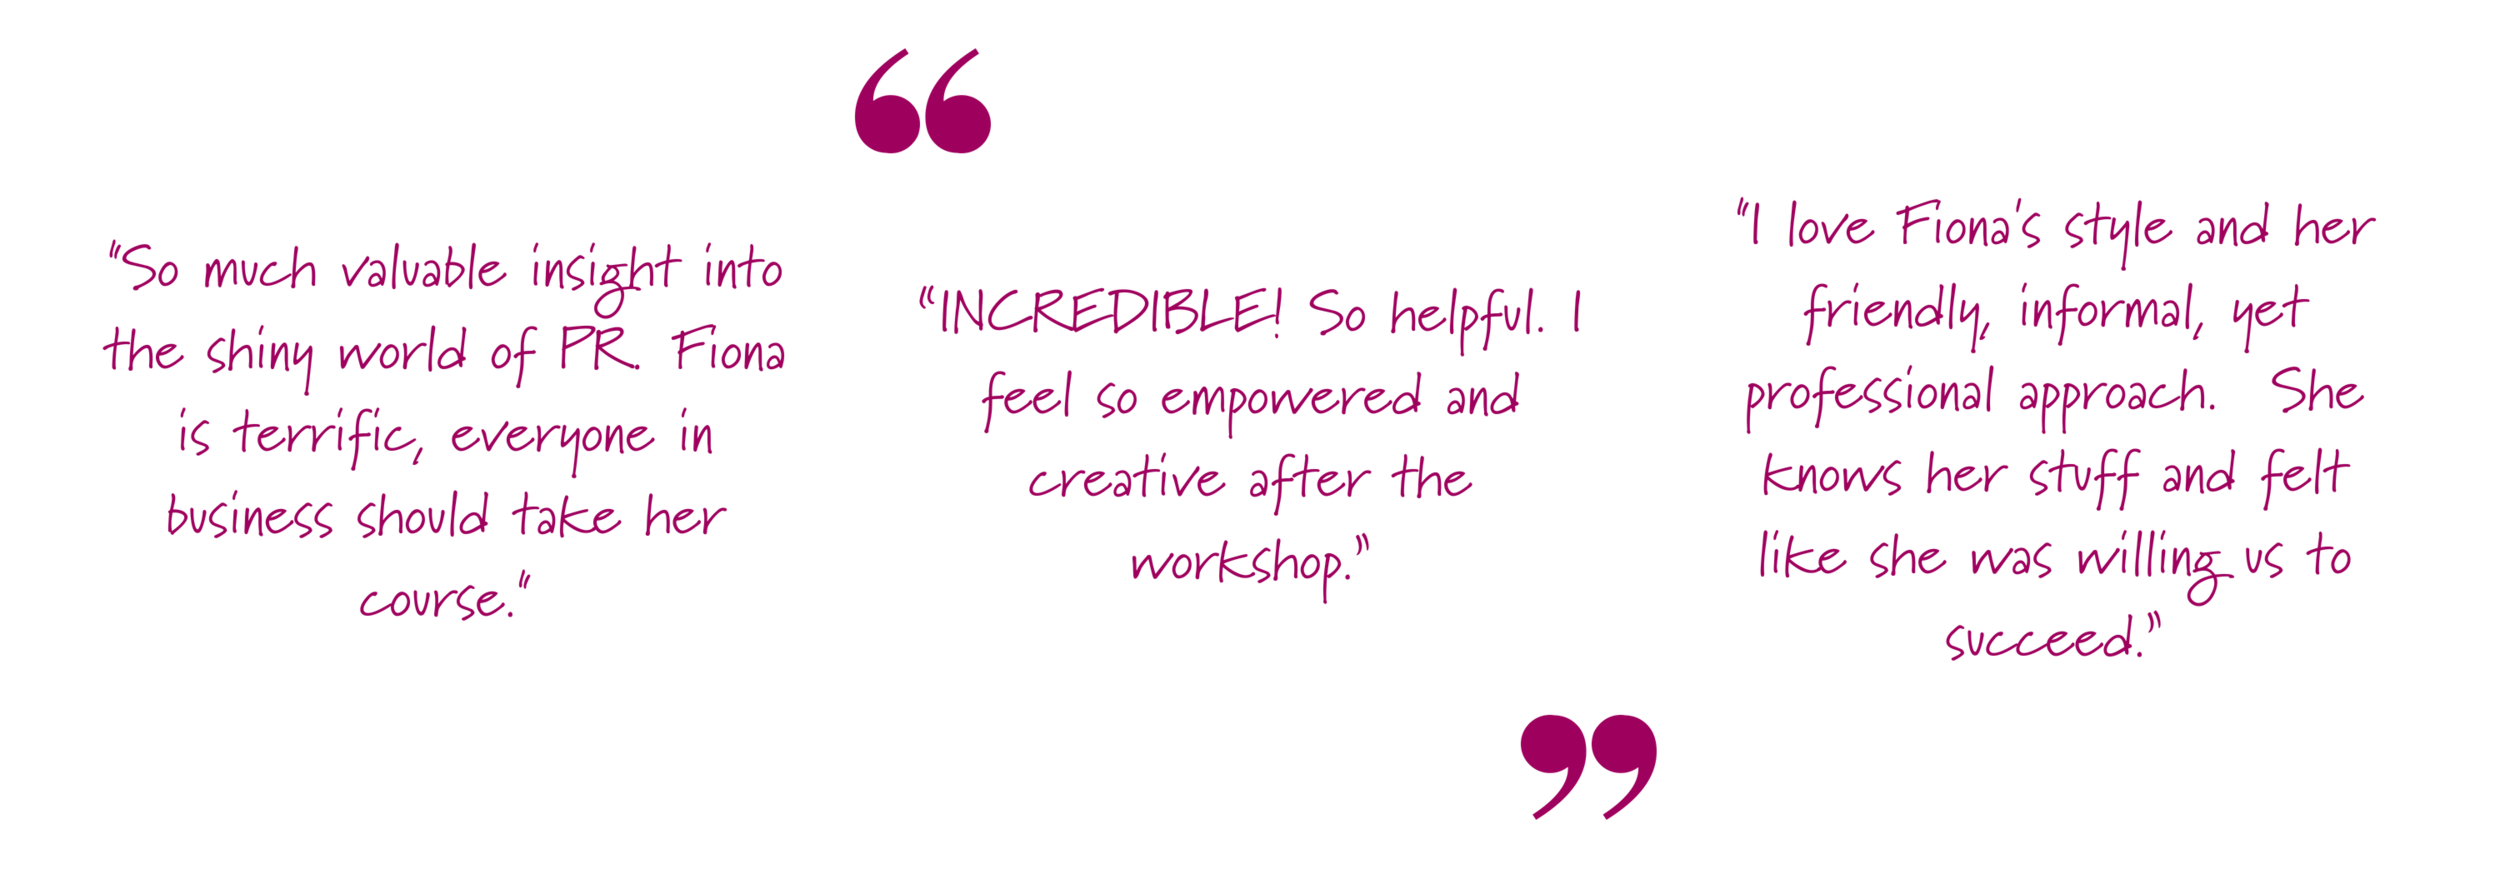 """INCREDIBLE! So helpful. I feel so empowered and creative after the workshop.""-2.png"